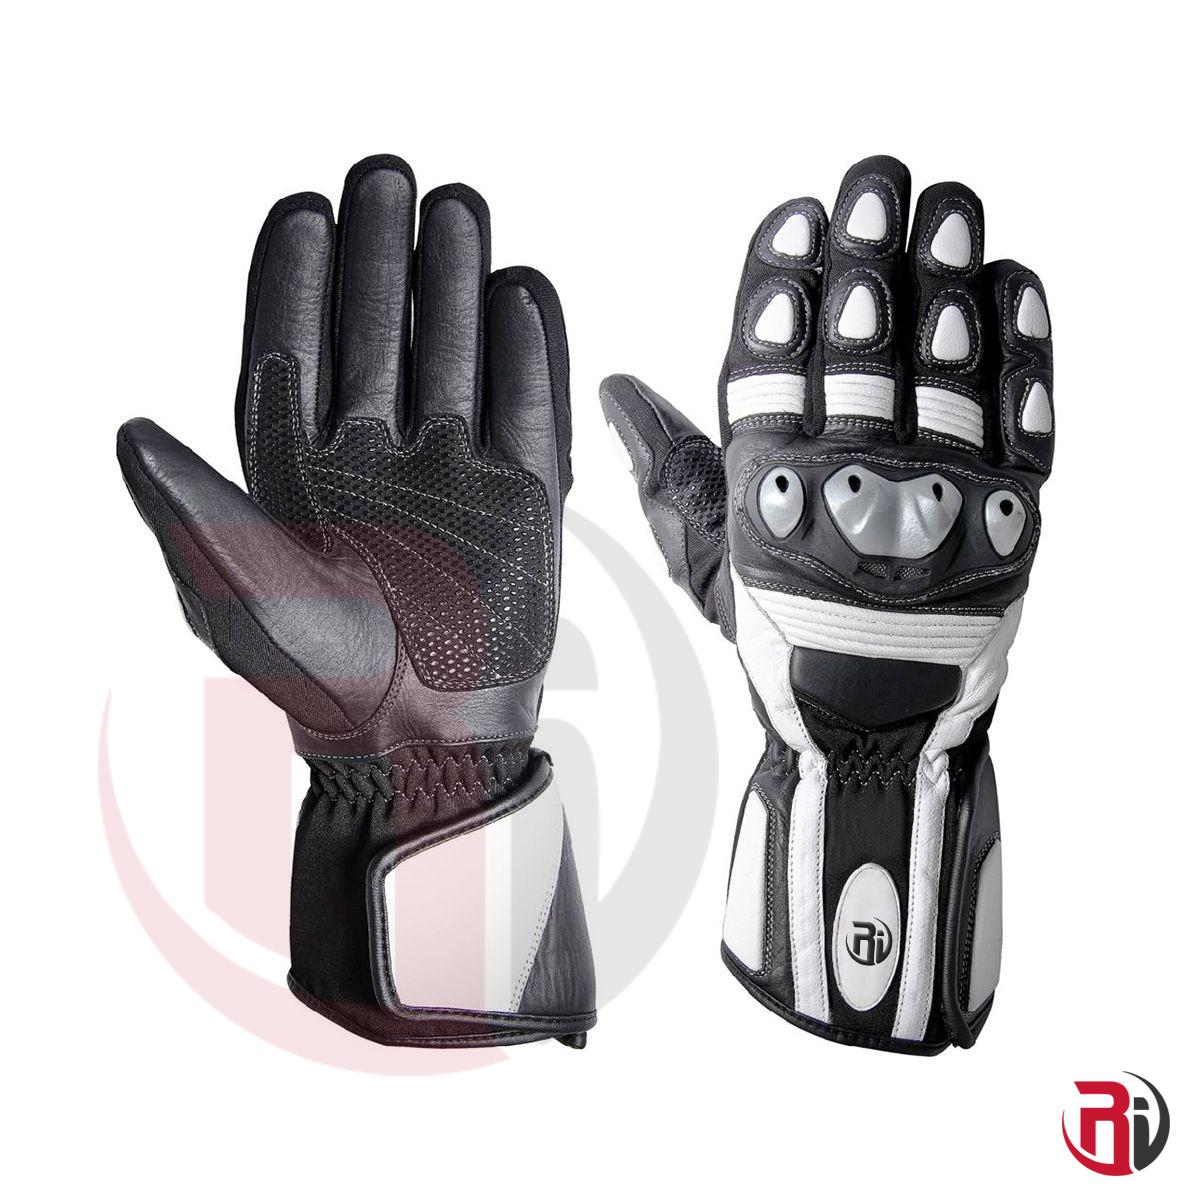 Motorbike Gloves, RI-1503